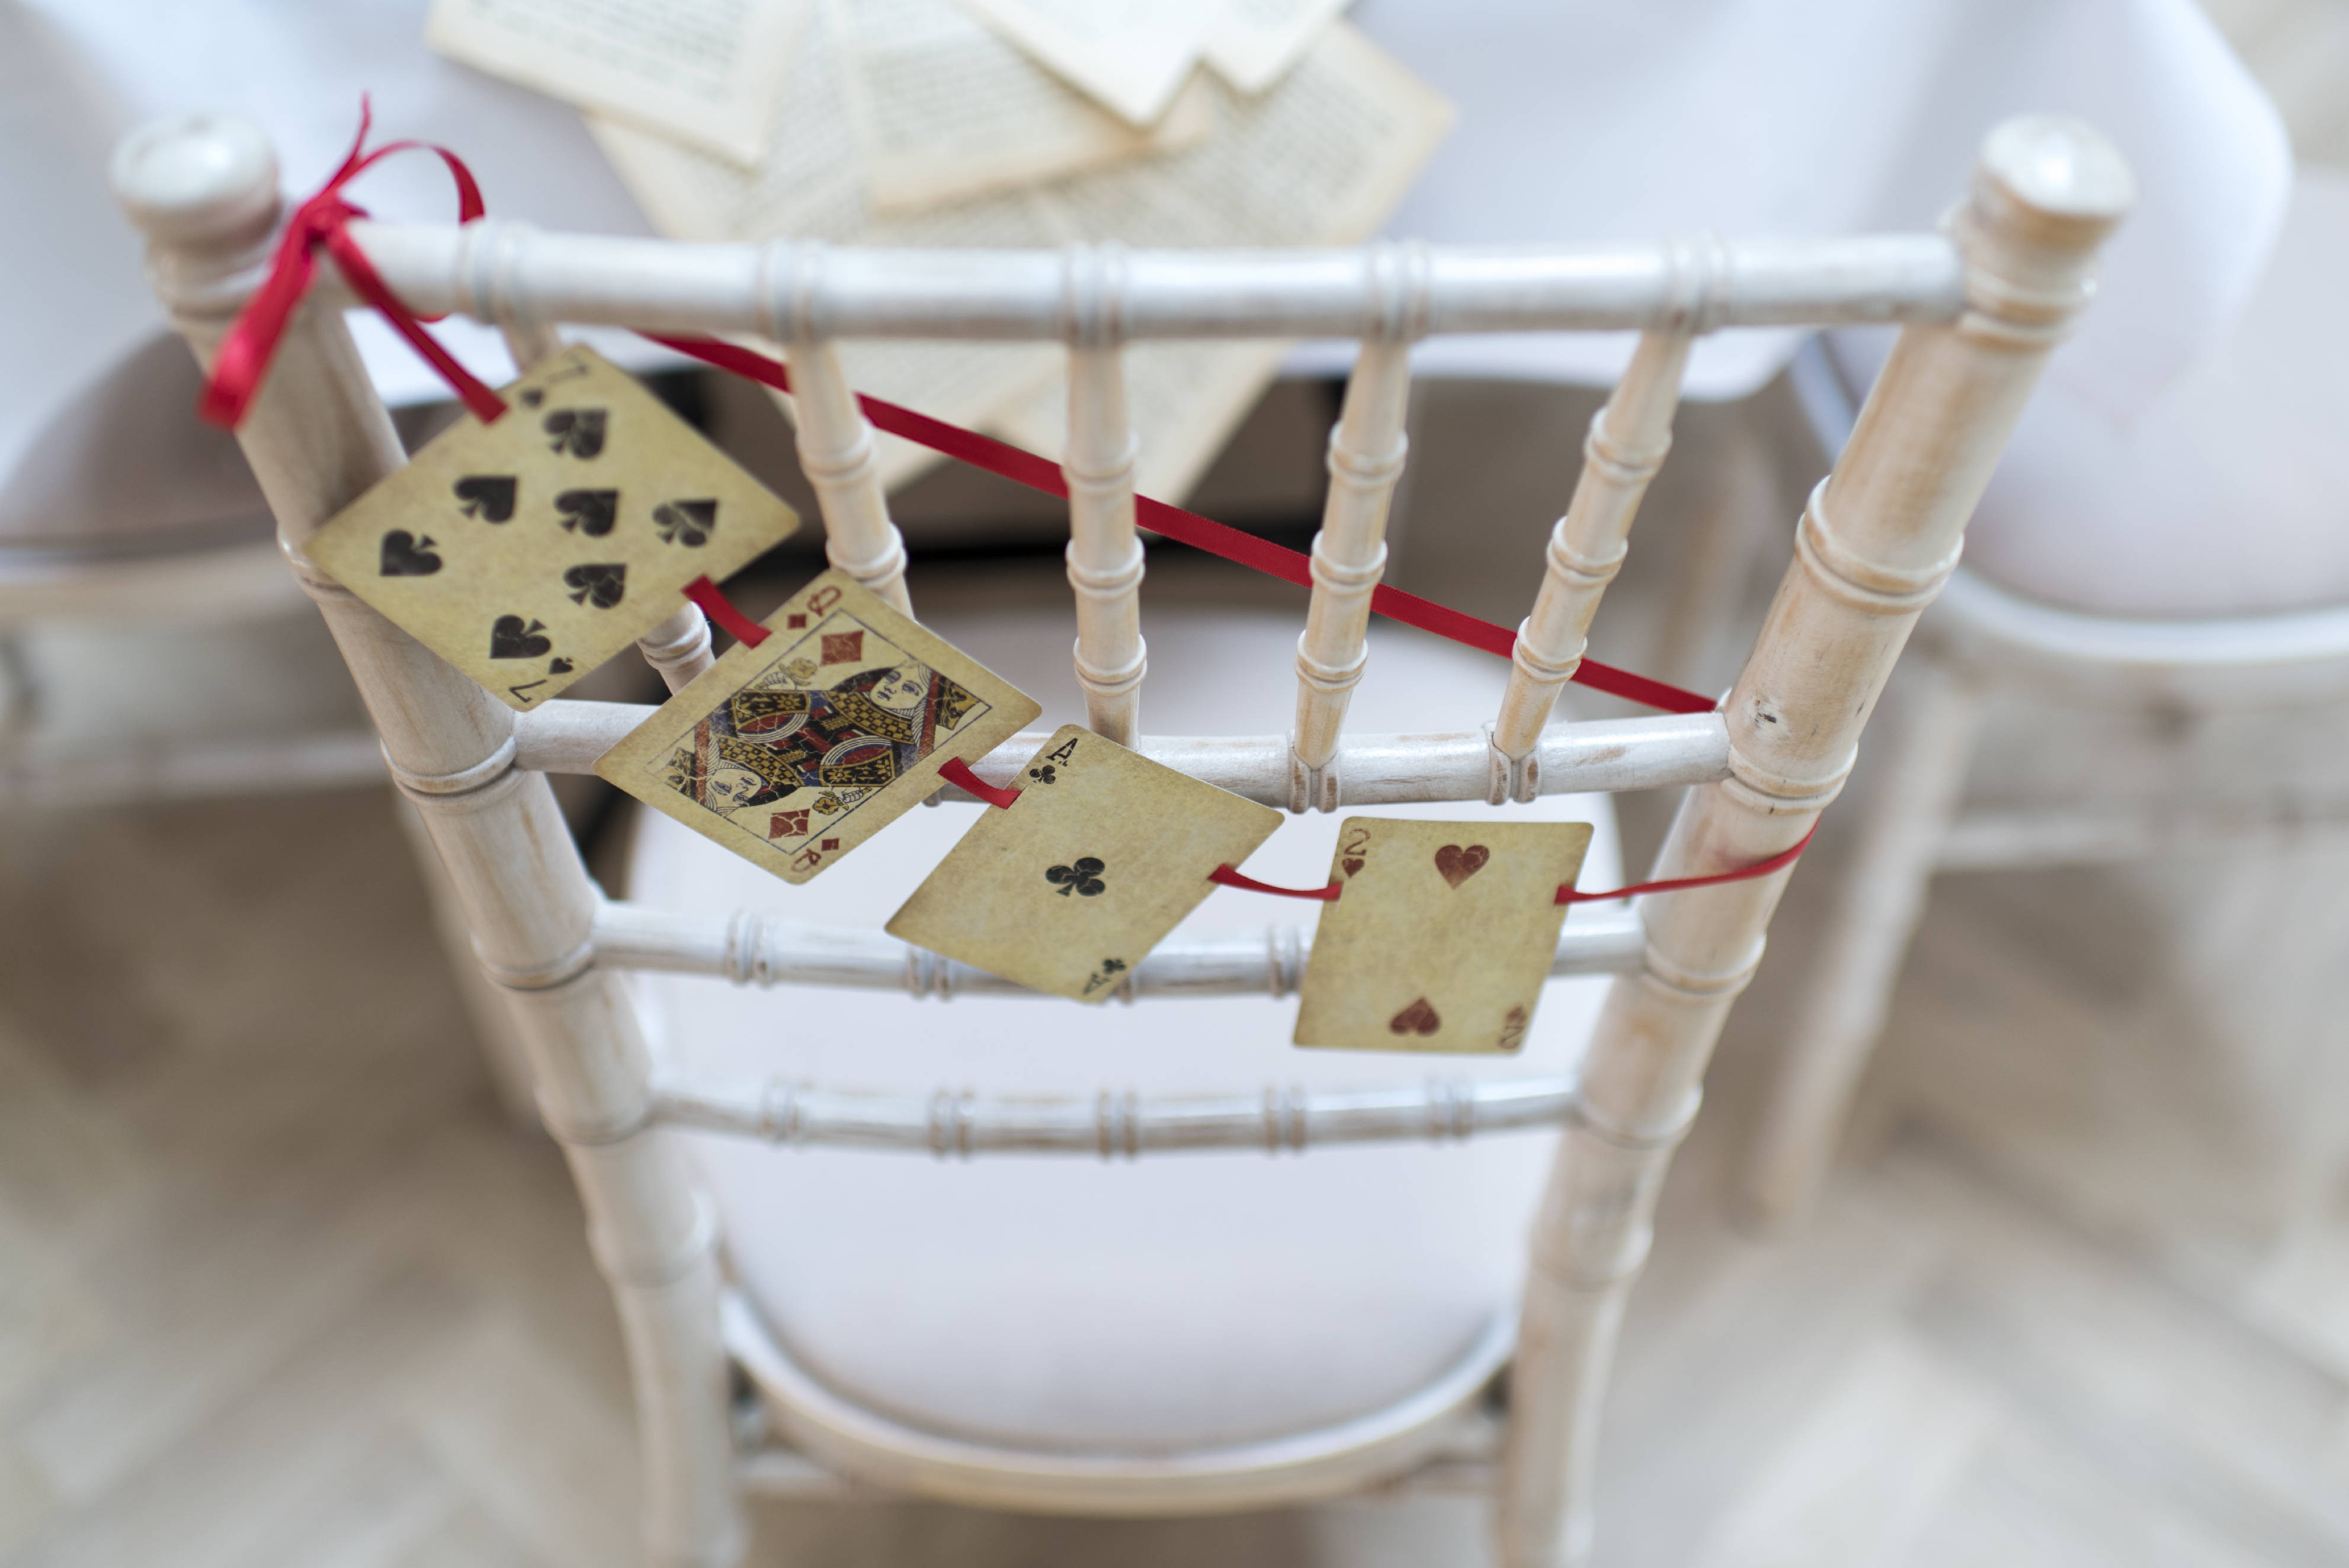 'Vintage meets Alice in Wonderland wedding' - A Mad Hatters Tea Party